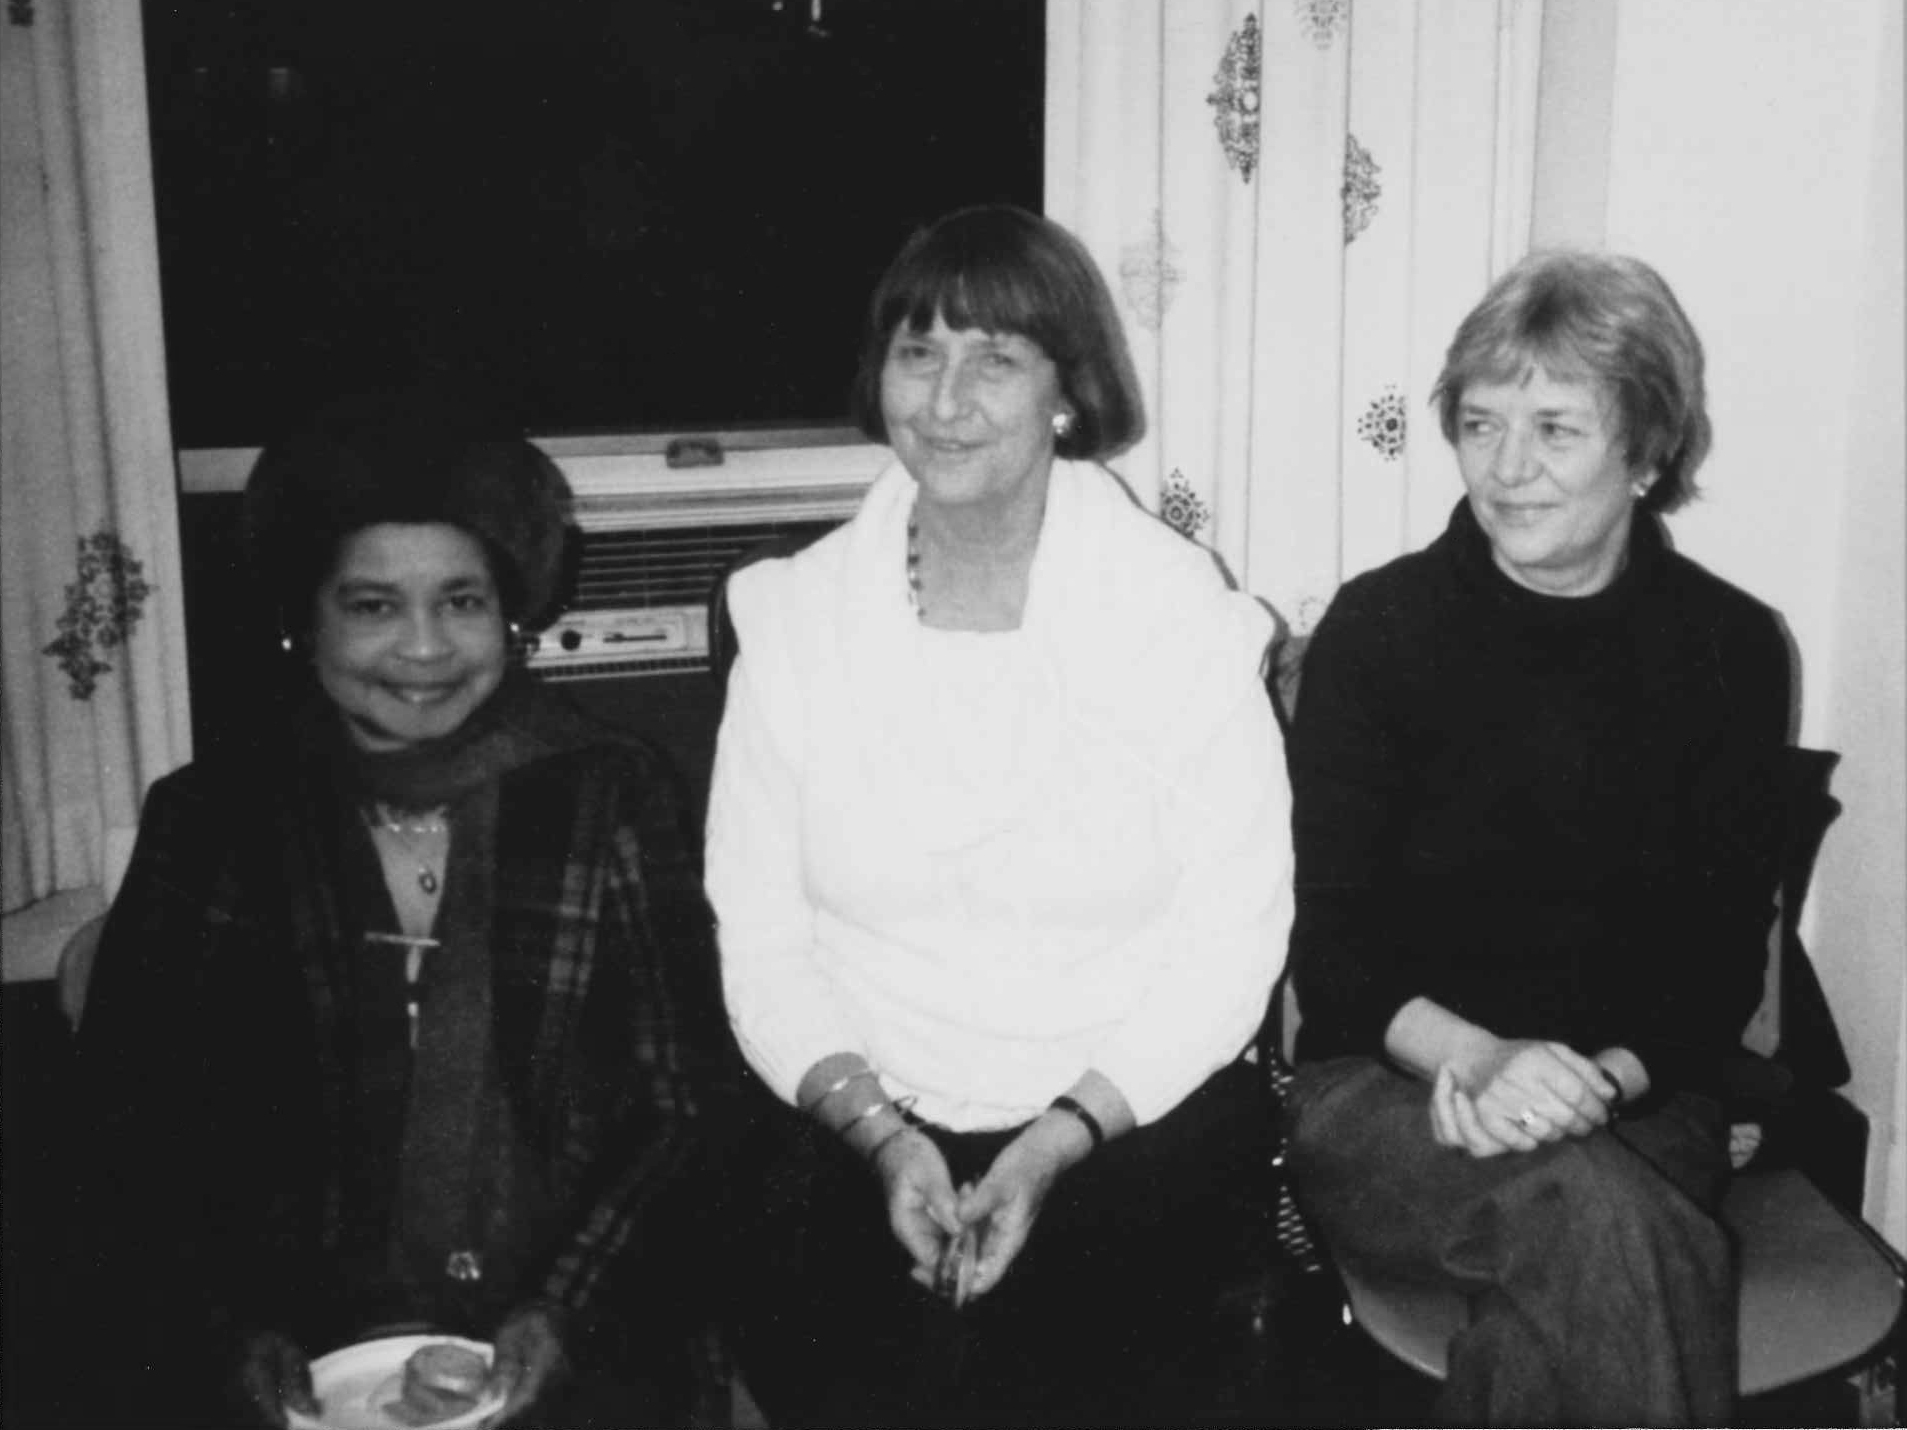 LAS Founding Mothers (L to R): Willie James, Jane Welch, Doka Clausen